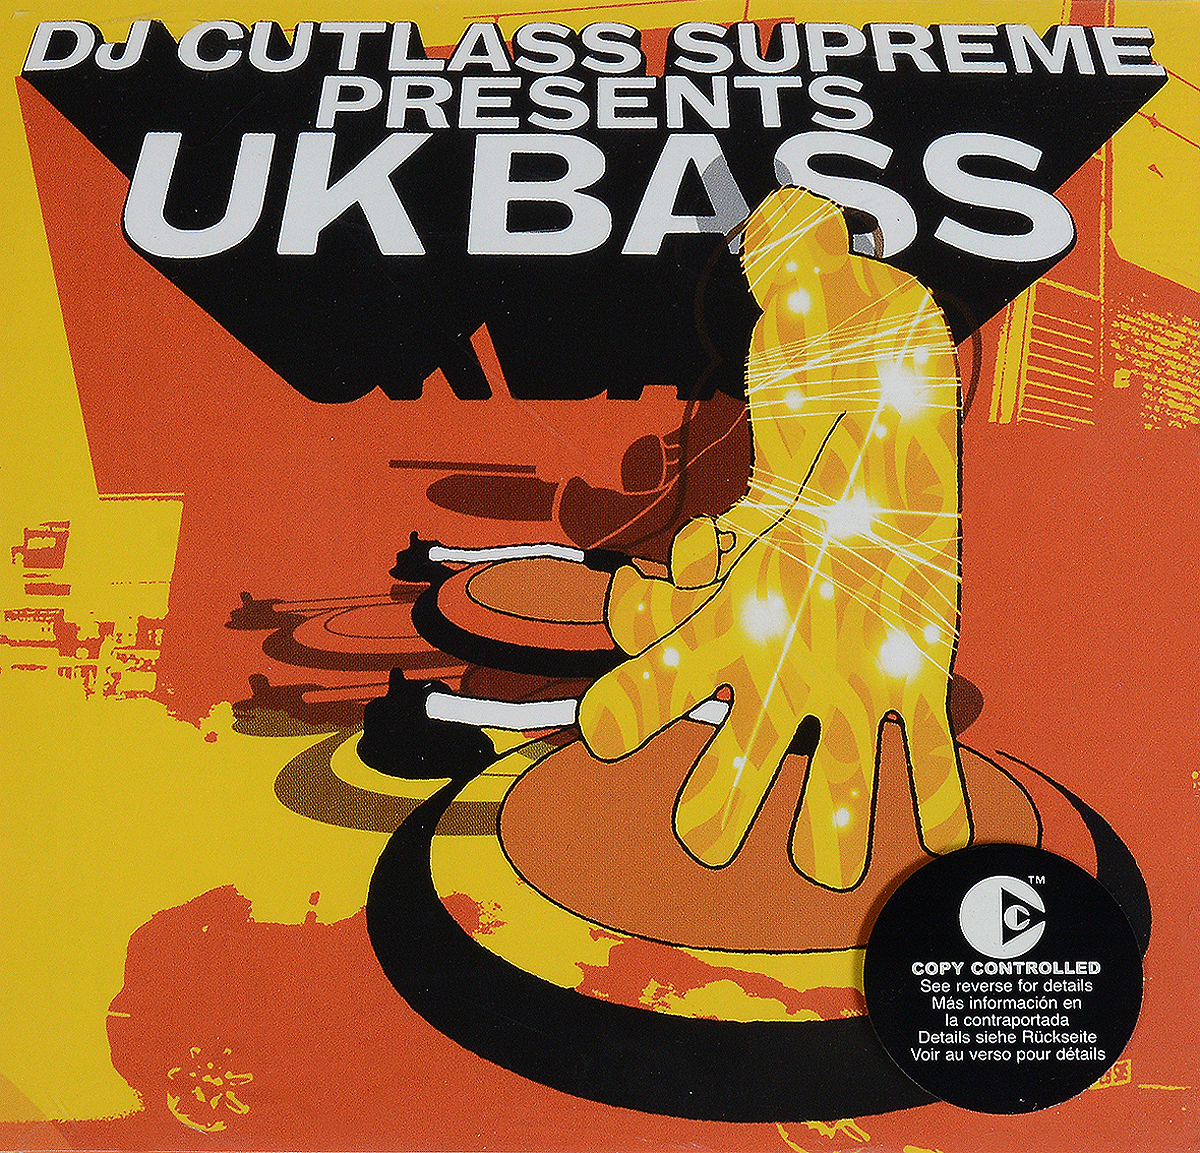 VARIOUS ARTISTS. DJ CUTLASS SUPREME PRESENTS UK BASS